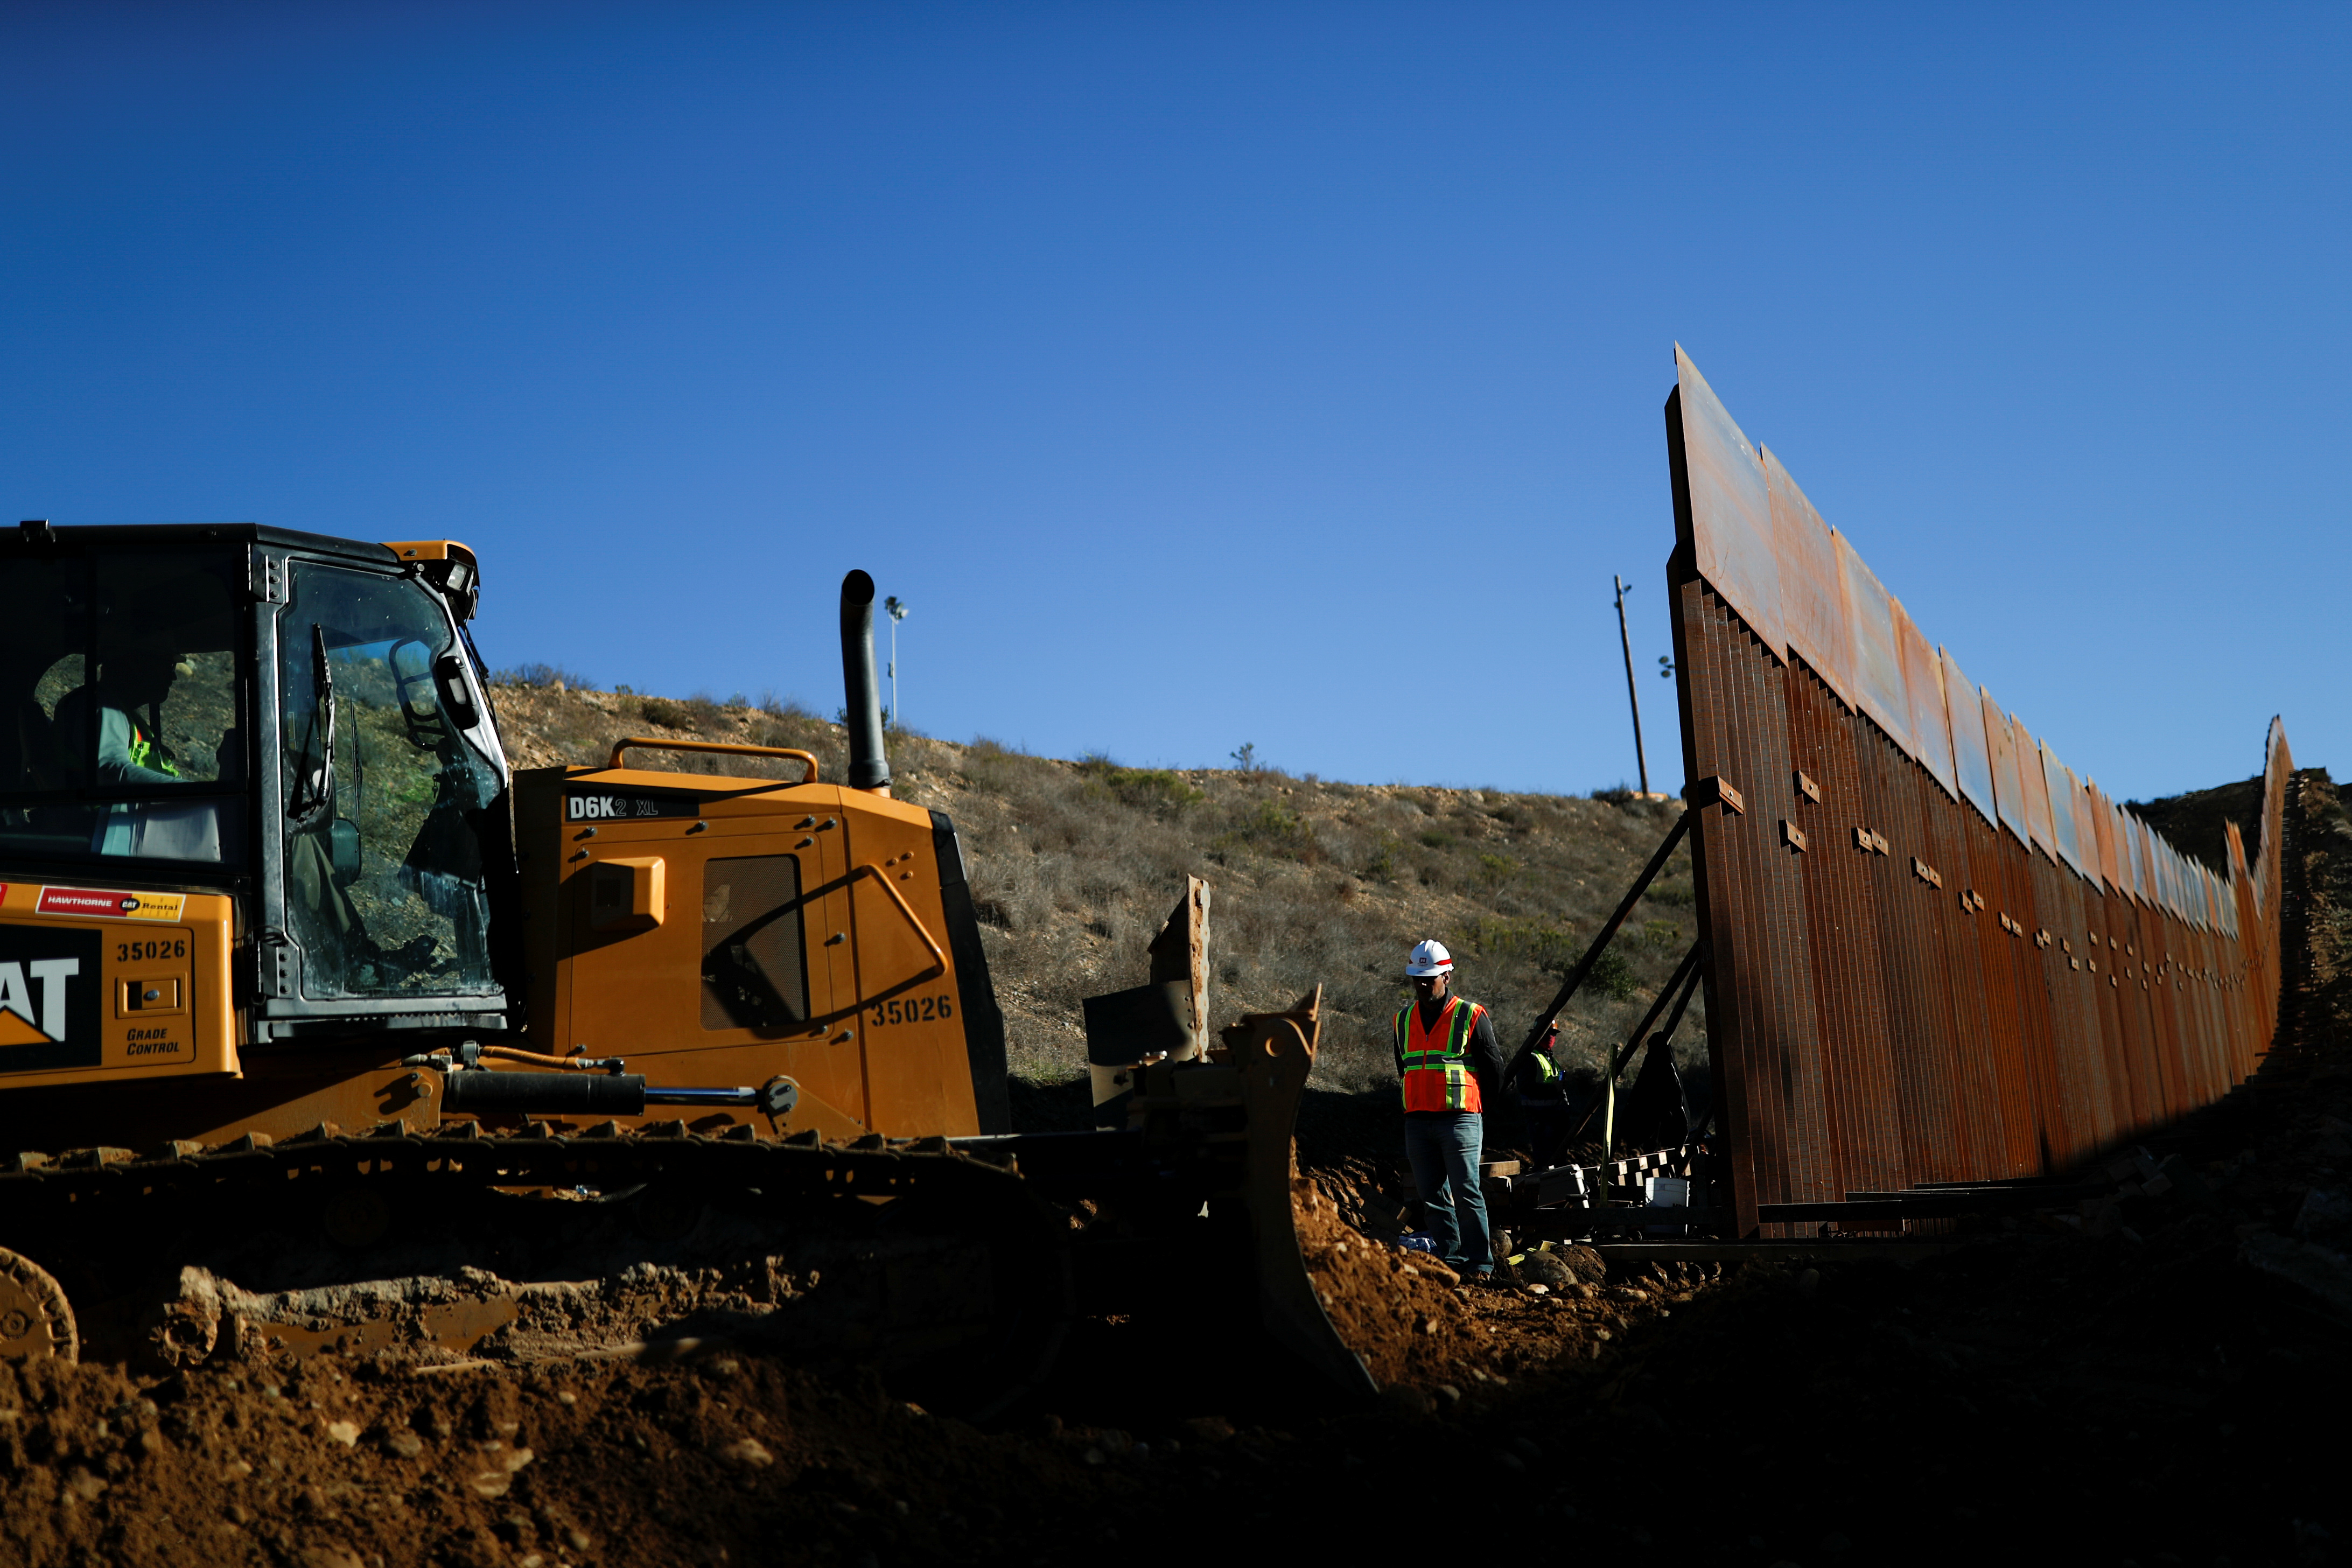 FILE PHOTO: Workers on the U.S. side, work on the border wall between Mexico and the U.S., as seen from Tijuana, Mexico, December 13, 2018. REUTERS/Carlos Garcia Rawlins